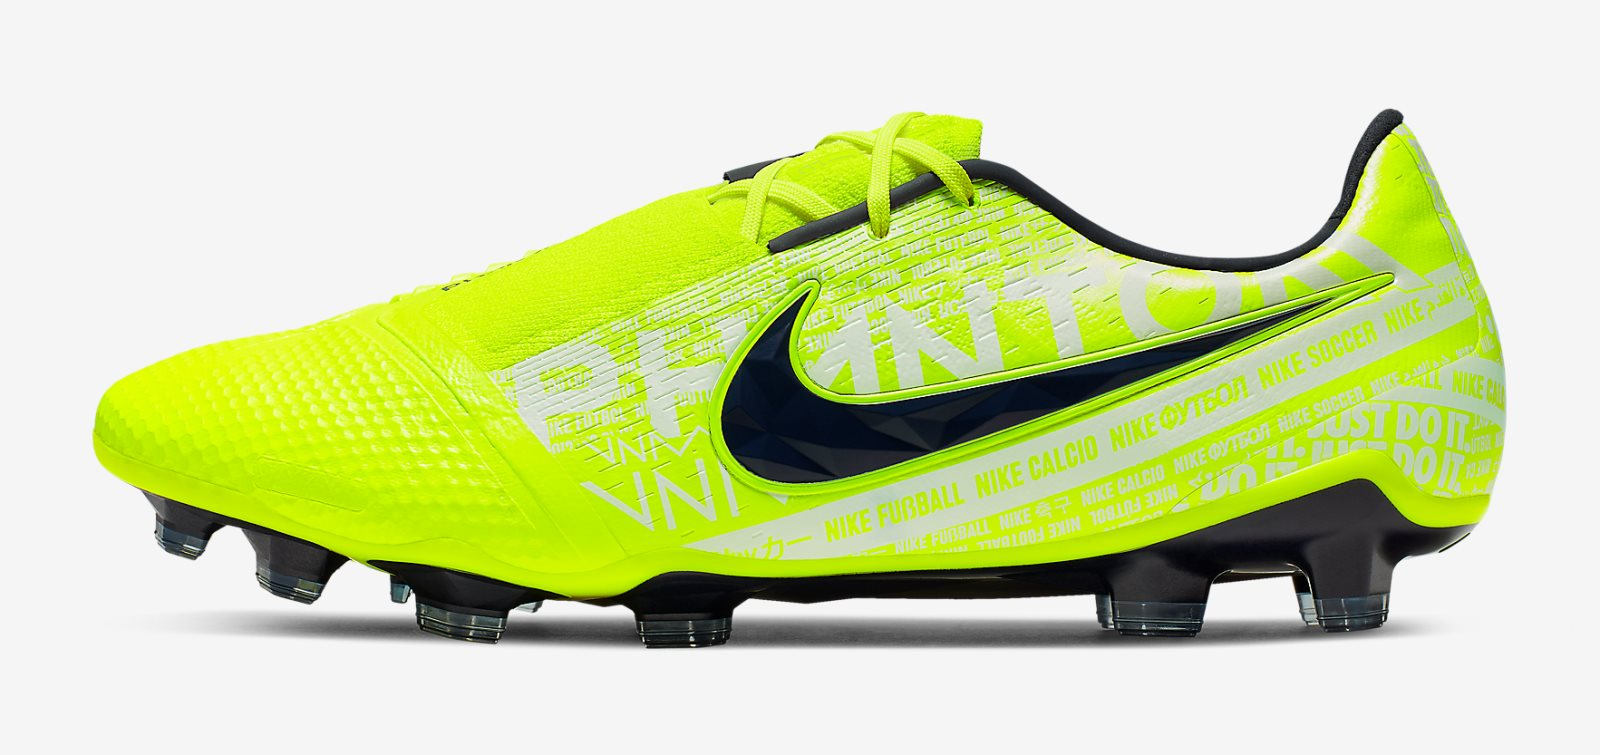 best Nike football boots for 2020